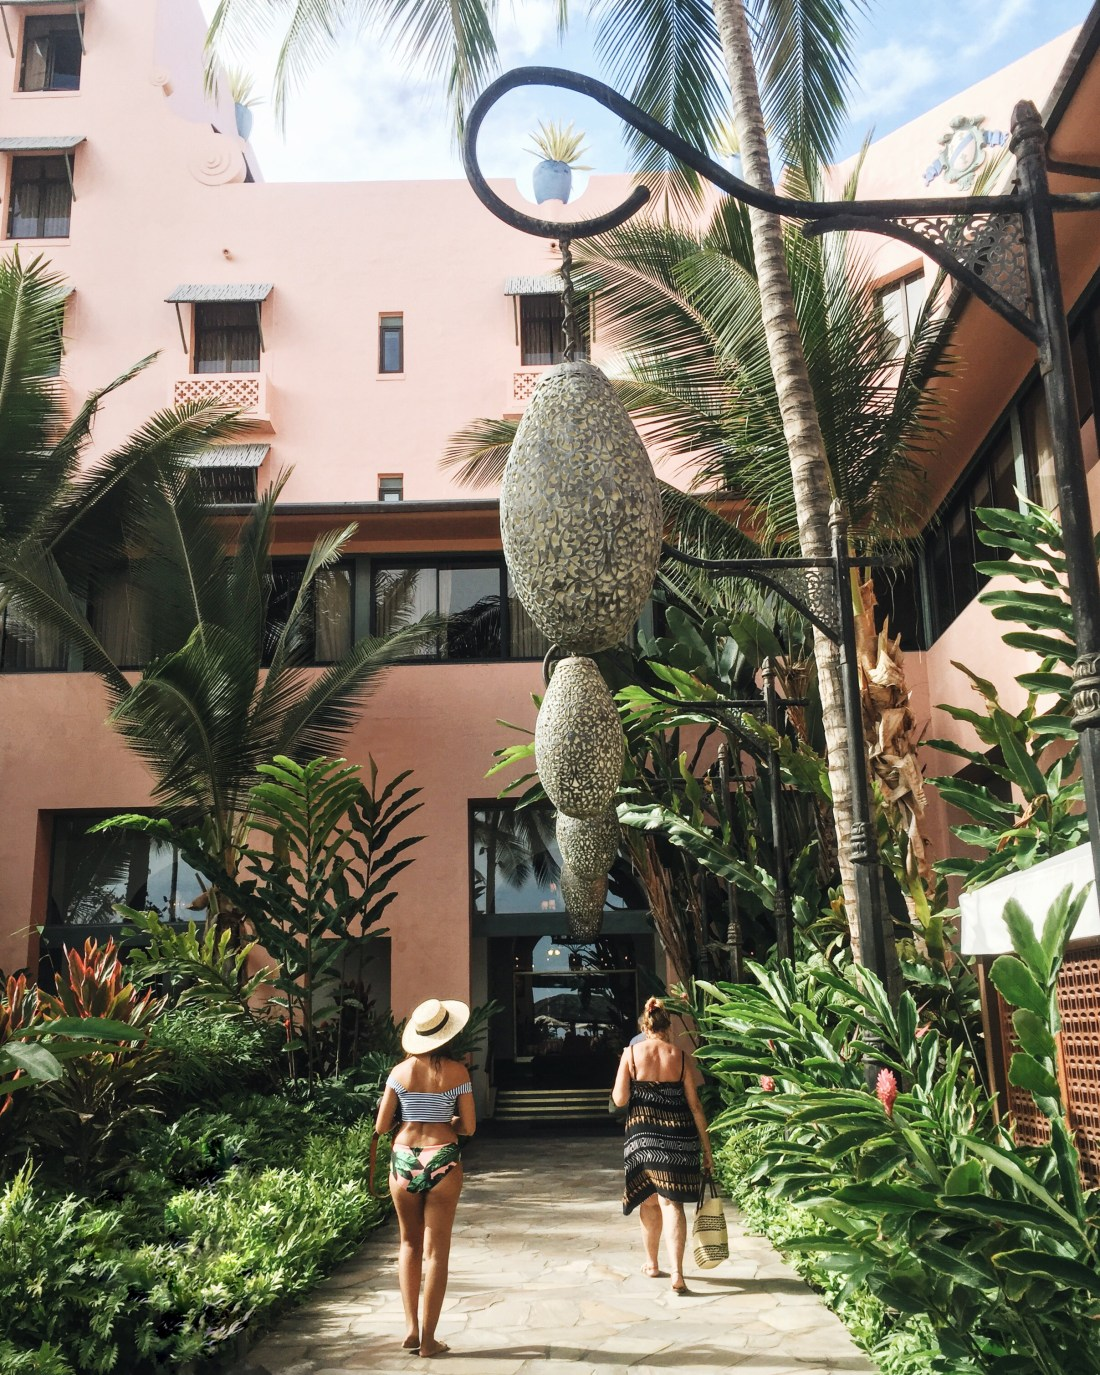 Royal Hawaiian Hotel | Pink Palace in the Pacific | Hotel Accommodations in Honolulu, Oahu | Best Places to stay on Oahu | Travel Guide to Oahu via @elanaloo + elanaloo.com